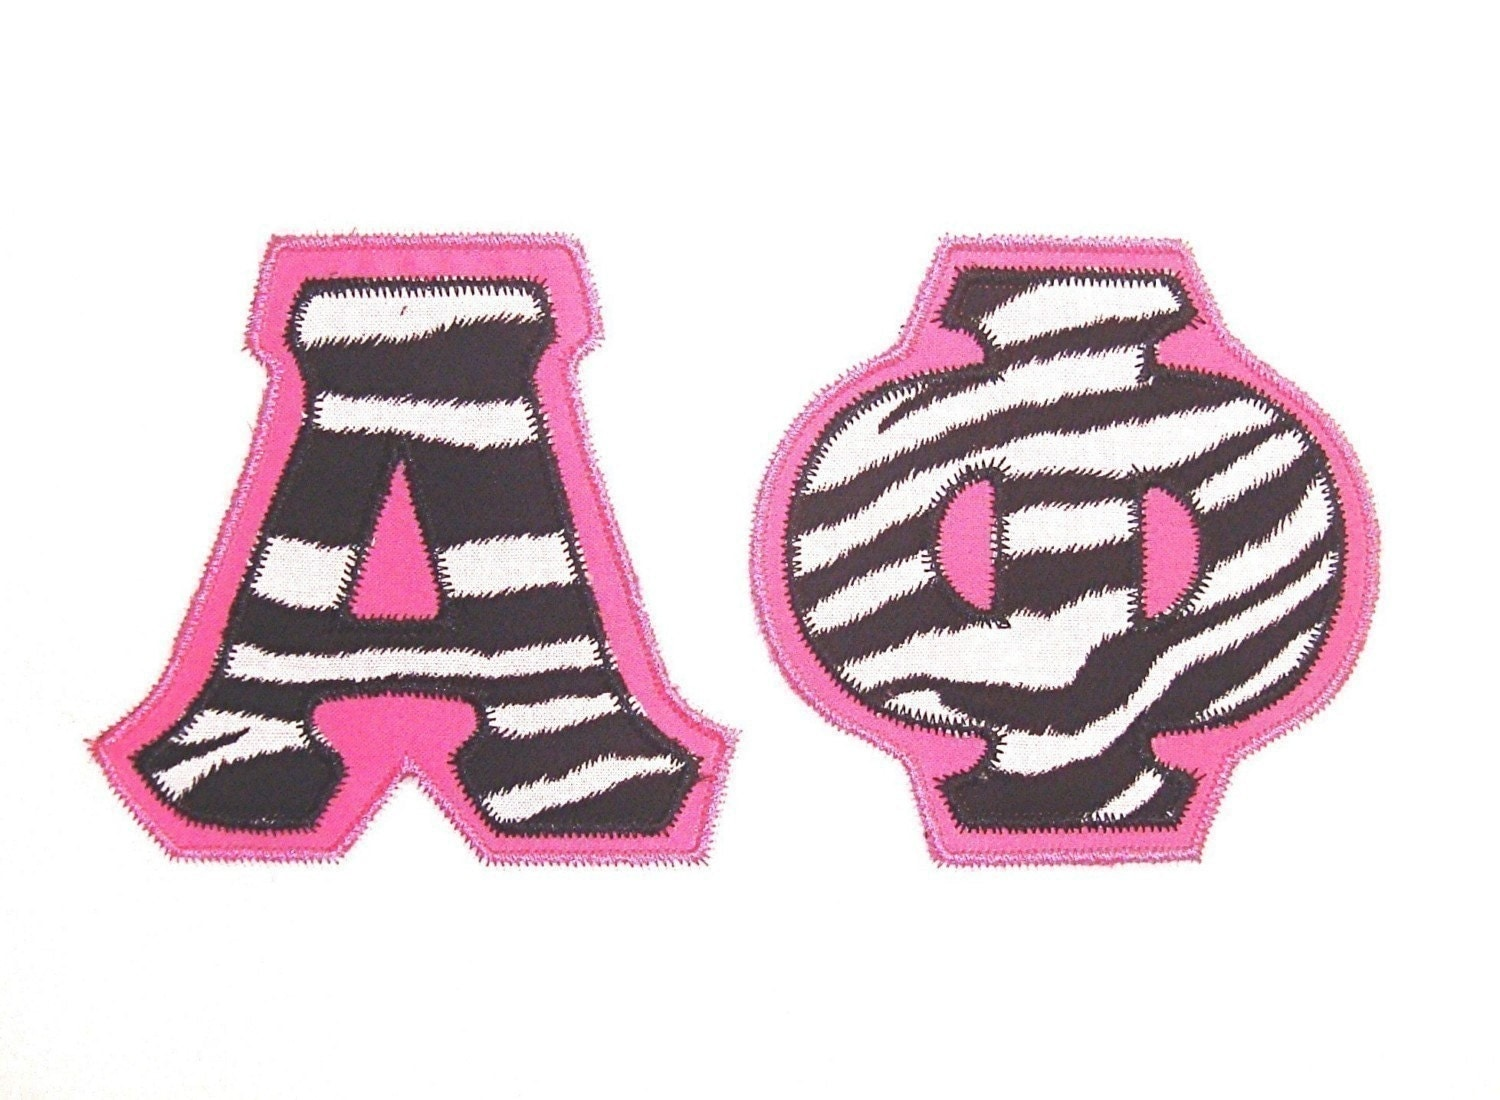 Greek double applique machine embroidery alphabet and